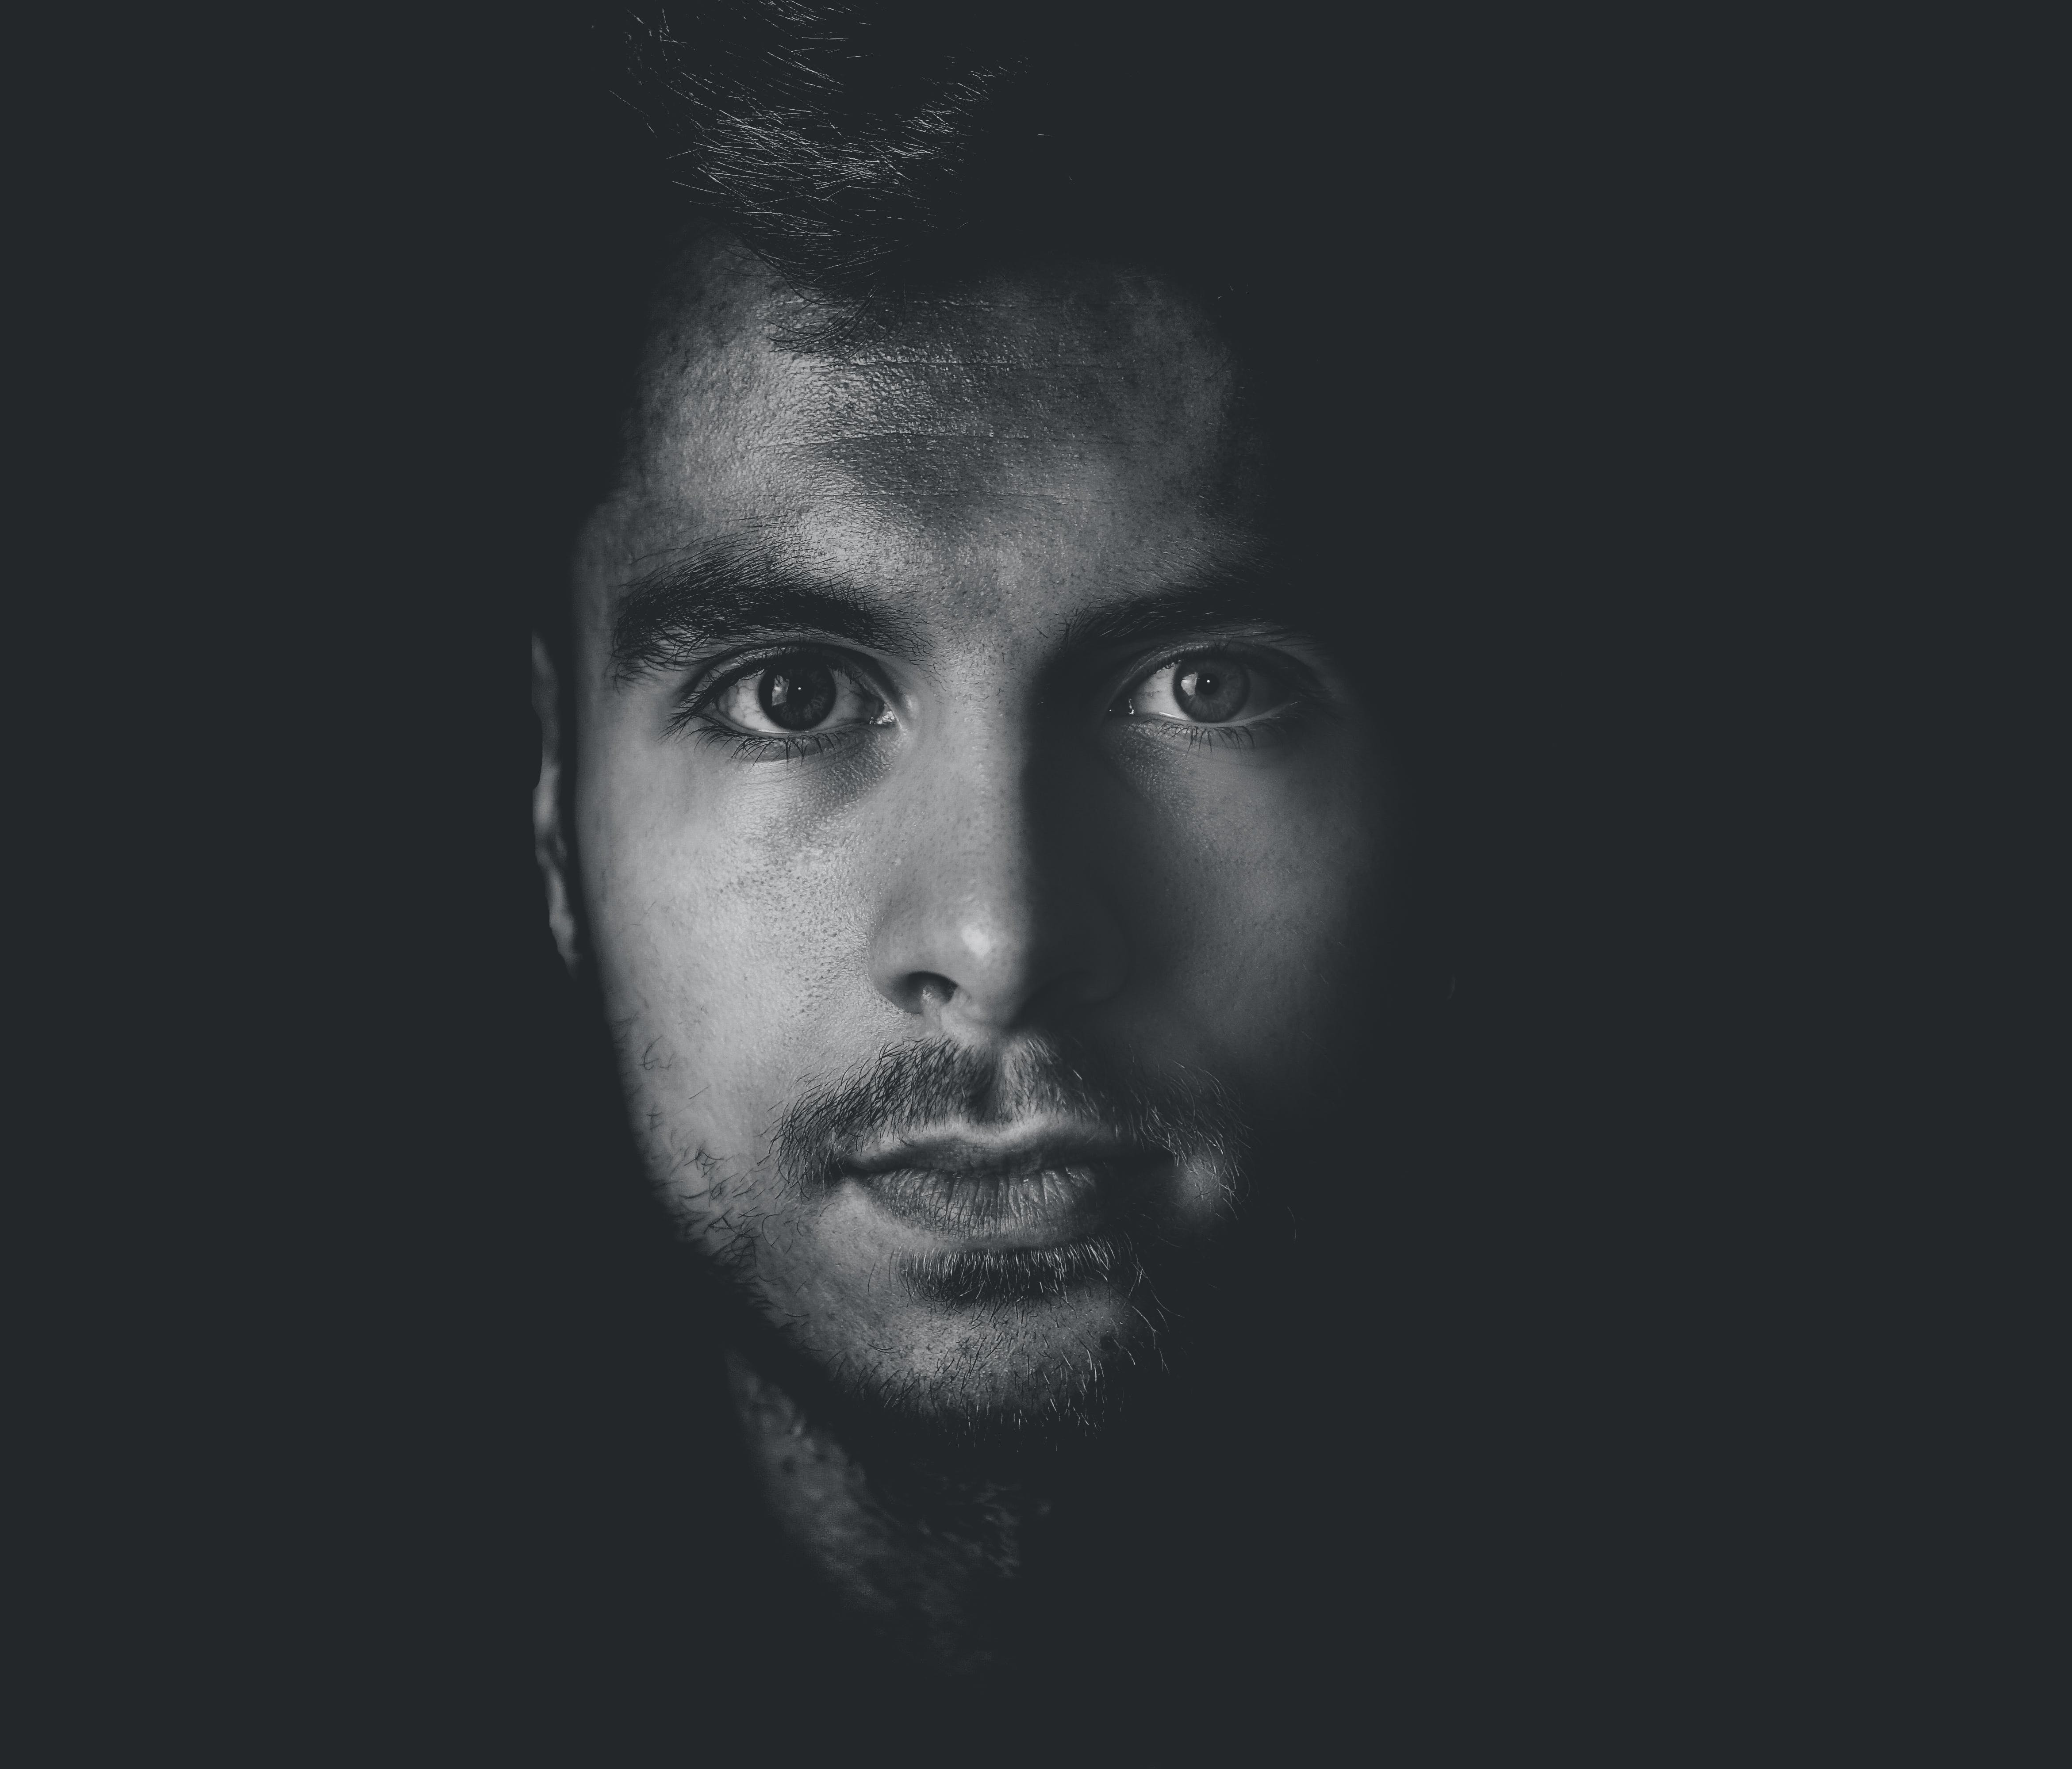 Grayscale Photo of Man's Face